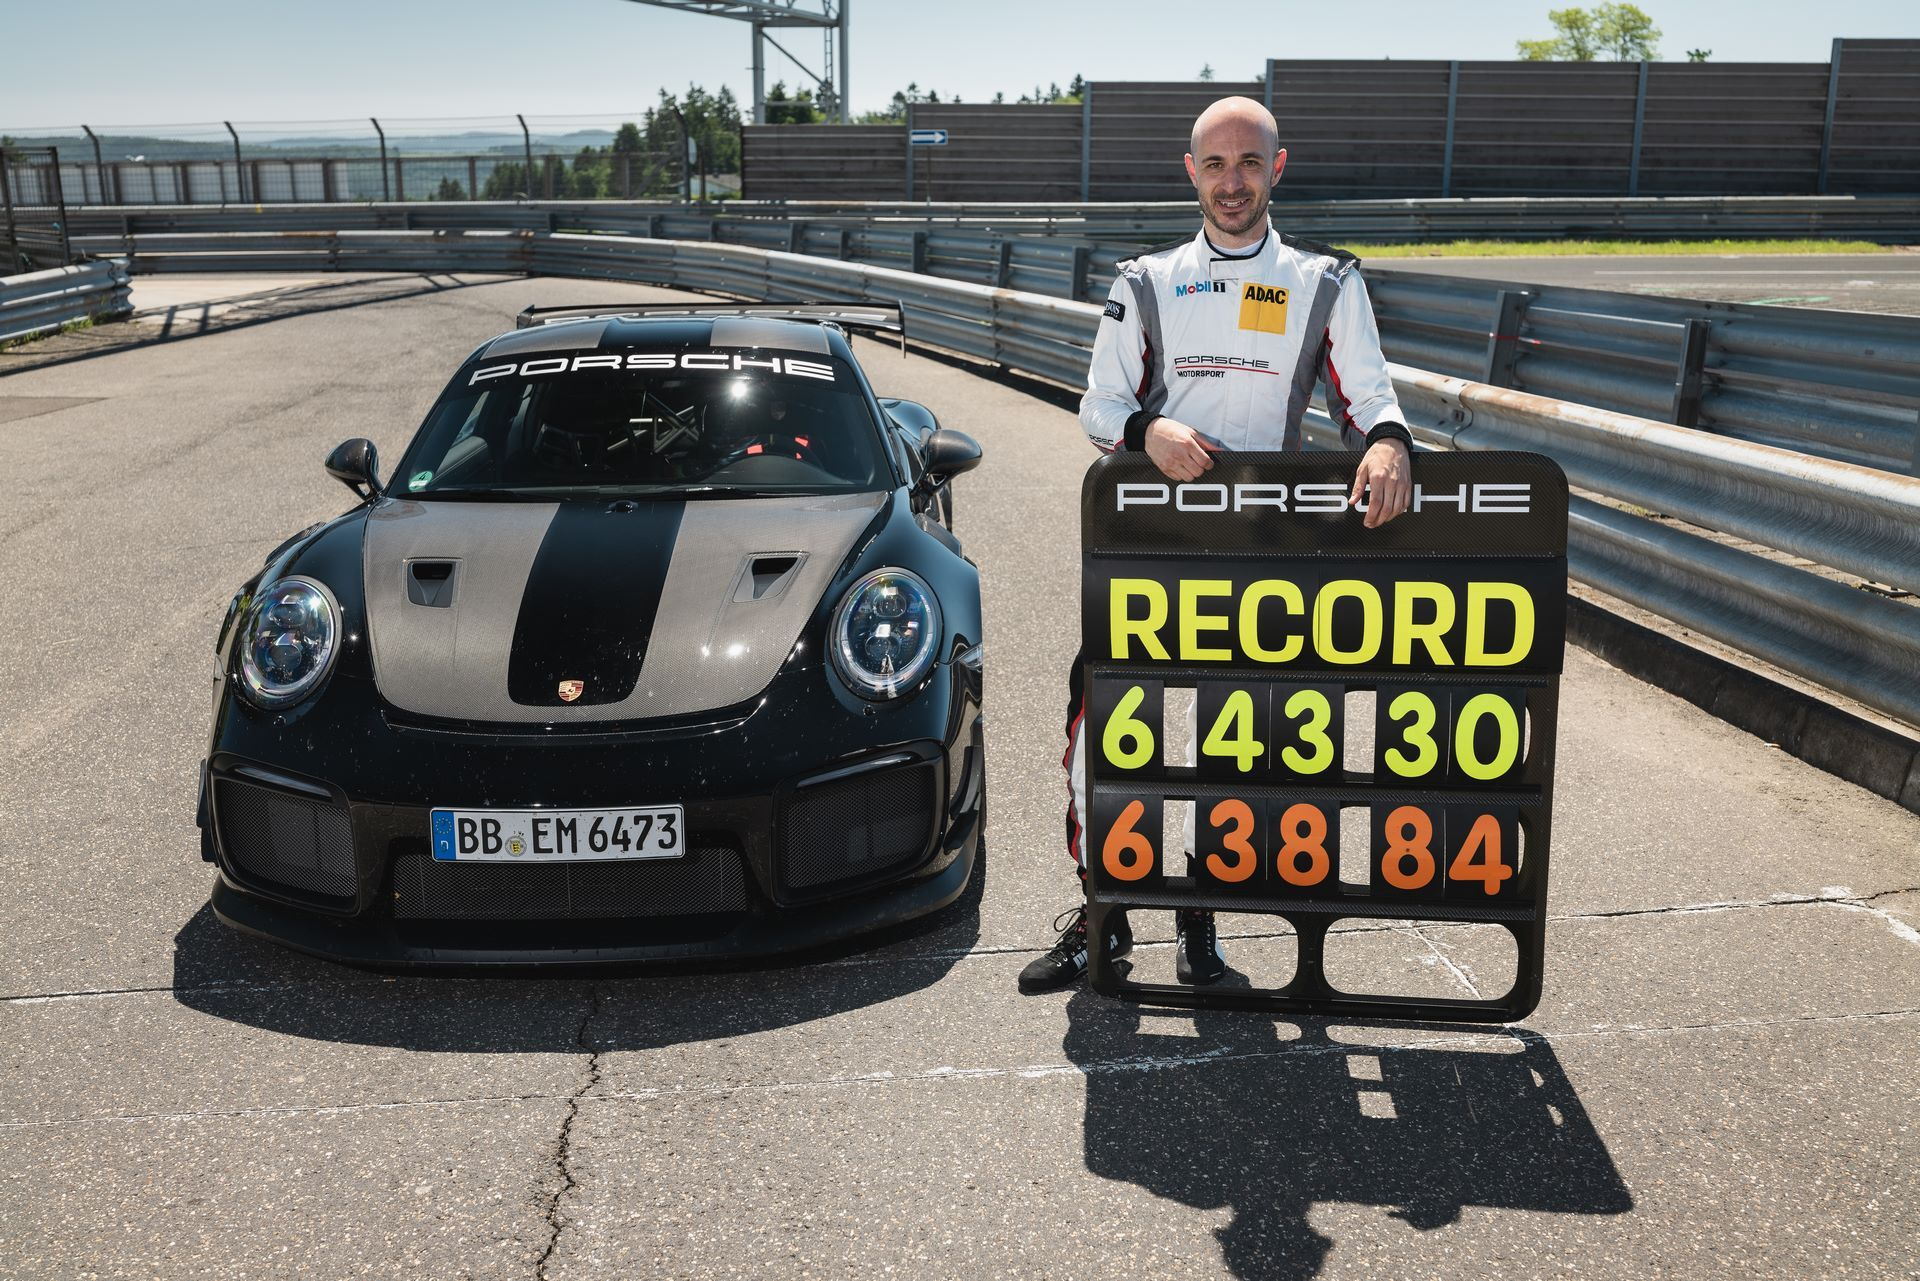 Porsche-911-GT2-RS-Manthey-Performance-Kit-Nurburgring-Record-12